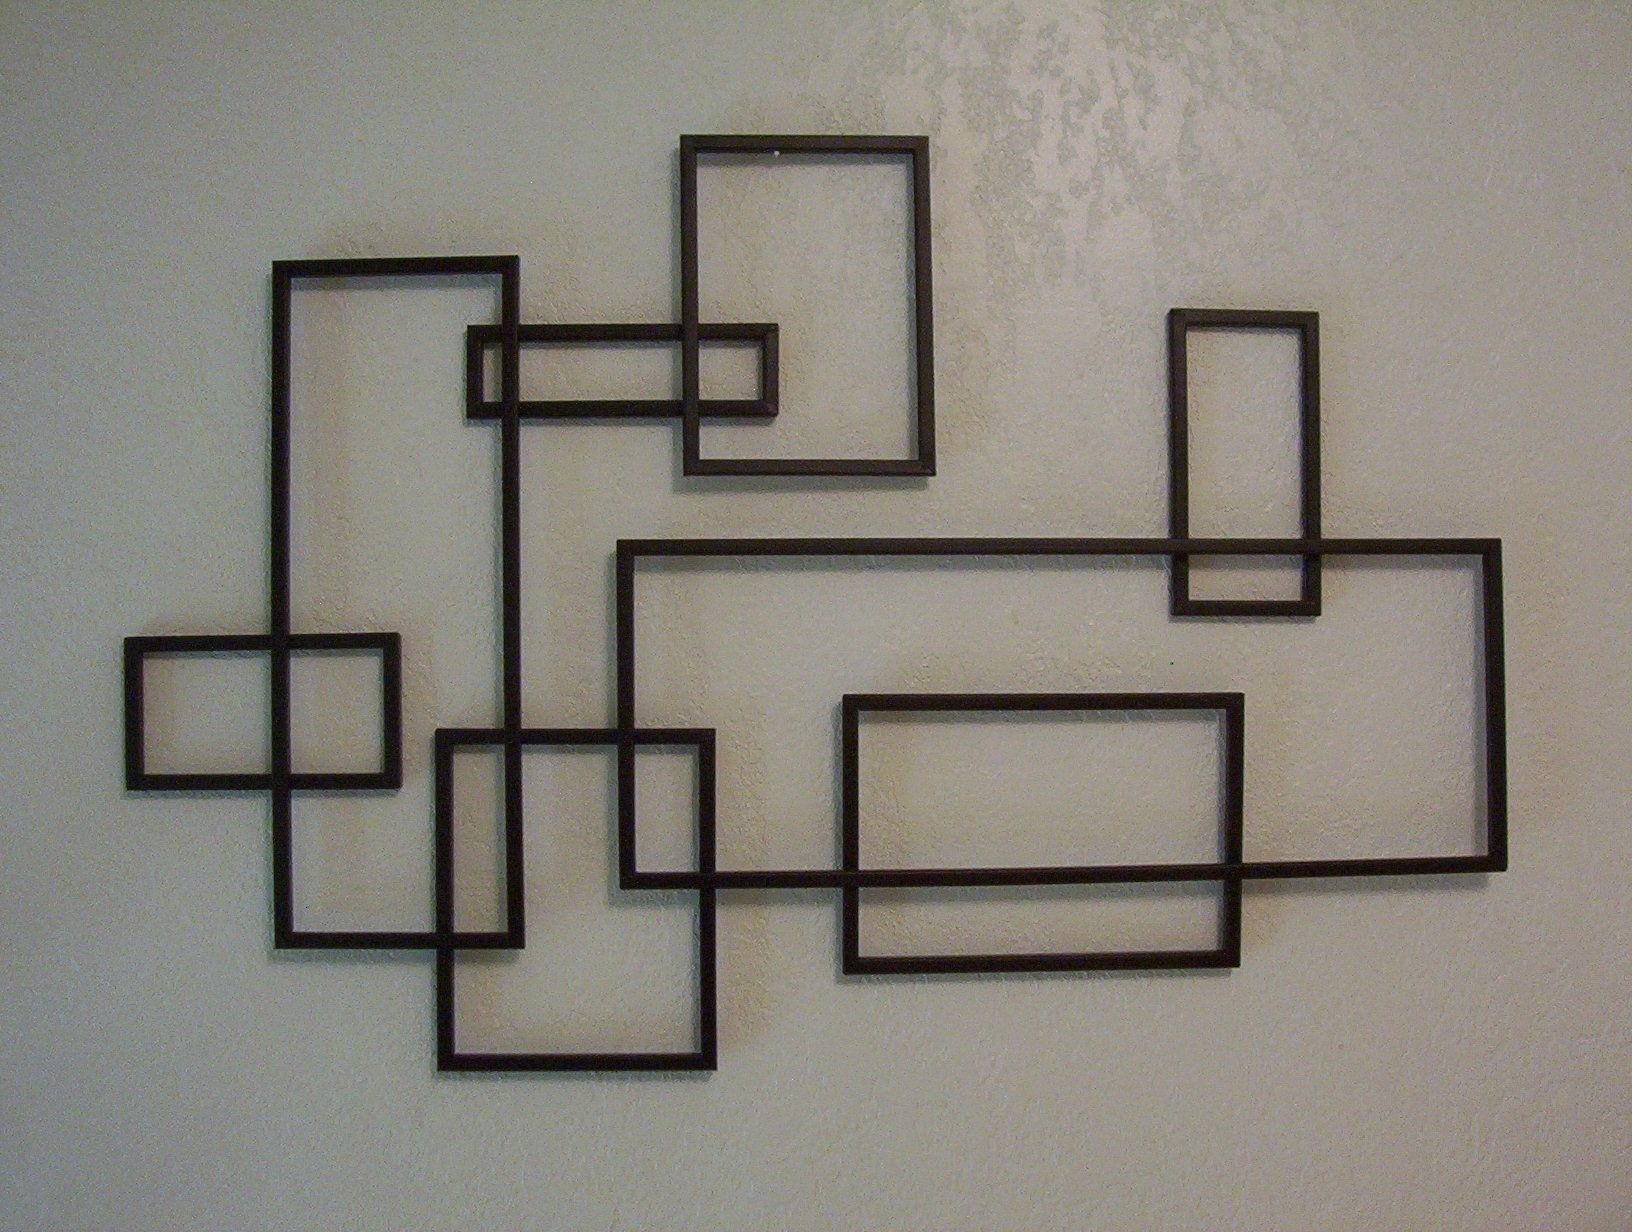 Mid Century Modern ~ De Stijl Style Geometric Metal Wall Sculpture Throughout 2018 Abstract Geometric Metal Wall Art (View 2 of 20)